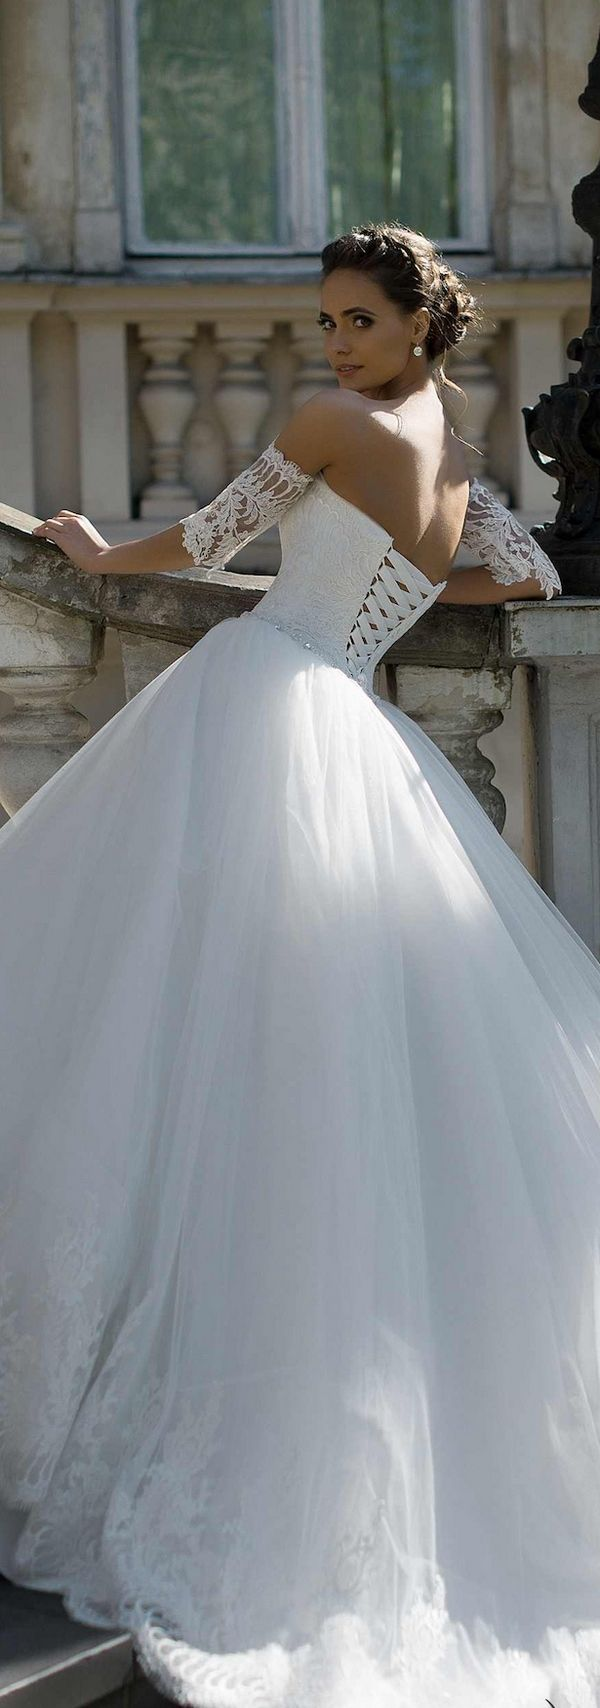 Magnificent Hire Wedding Dress Images - Wedding Ideas - memiocall.com